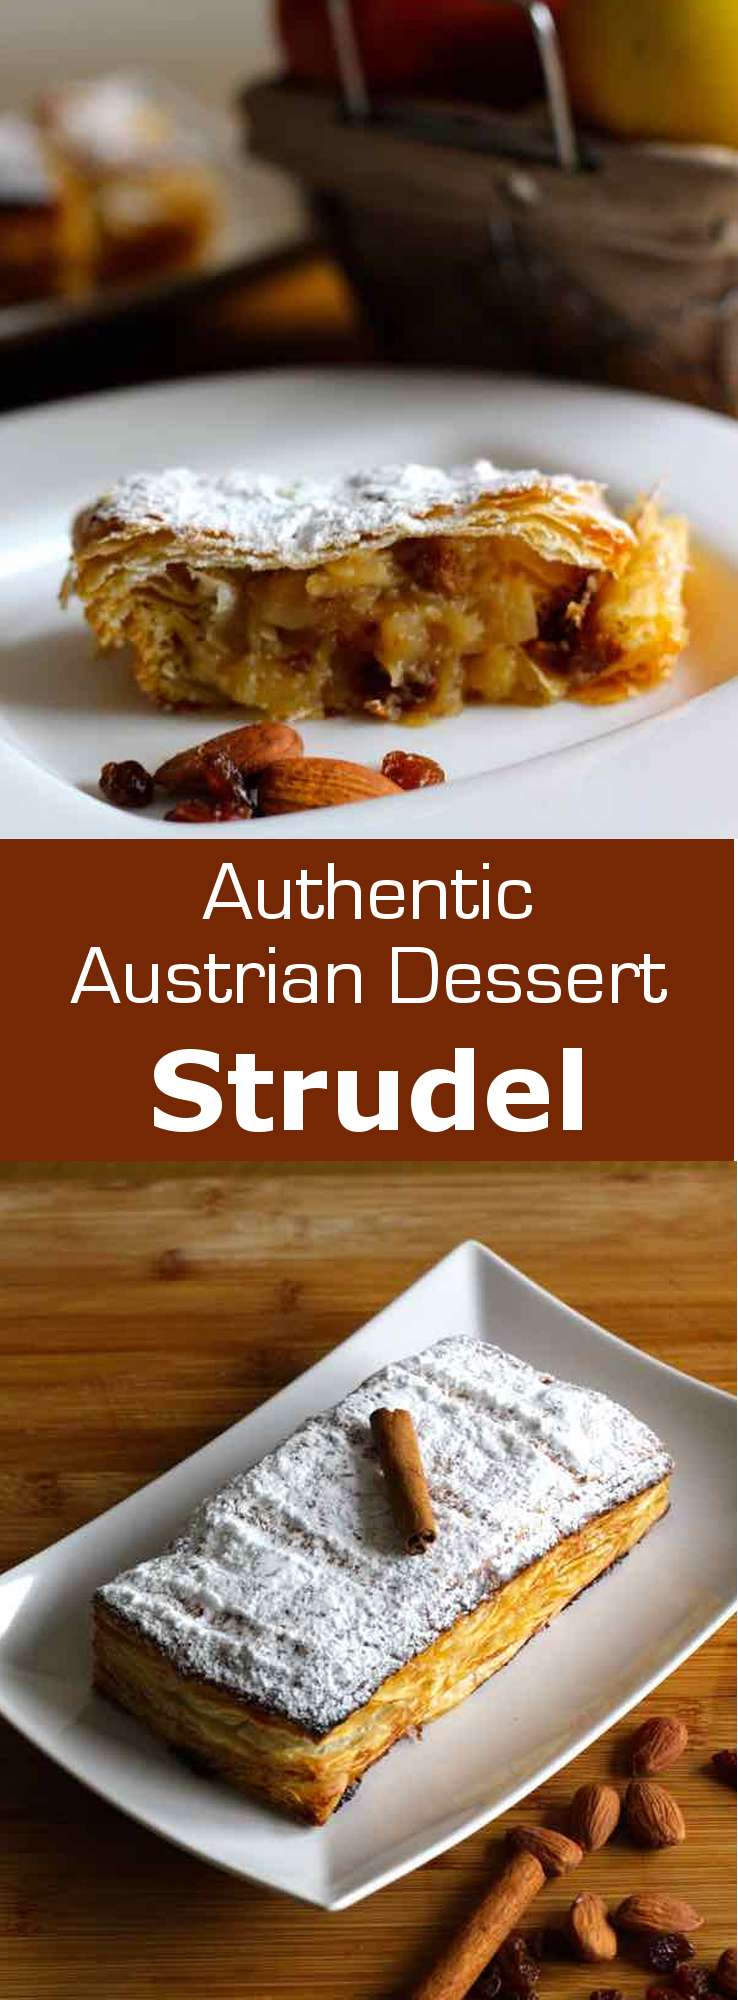 Apfelstrudel is a traditional Viennese pastry prepared with a thin dough that is filled with cooking apples, raisins, sugar, cinnamon, and bread crumbs. #Austria #Austrian #Ashkenazi #196flavors